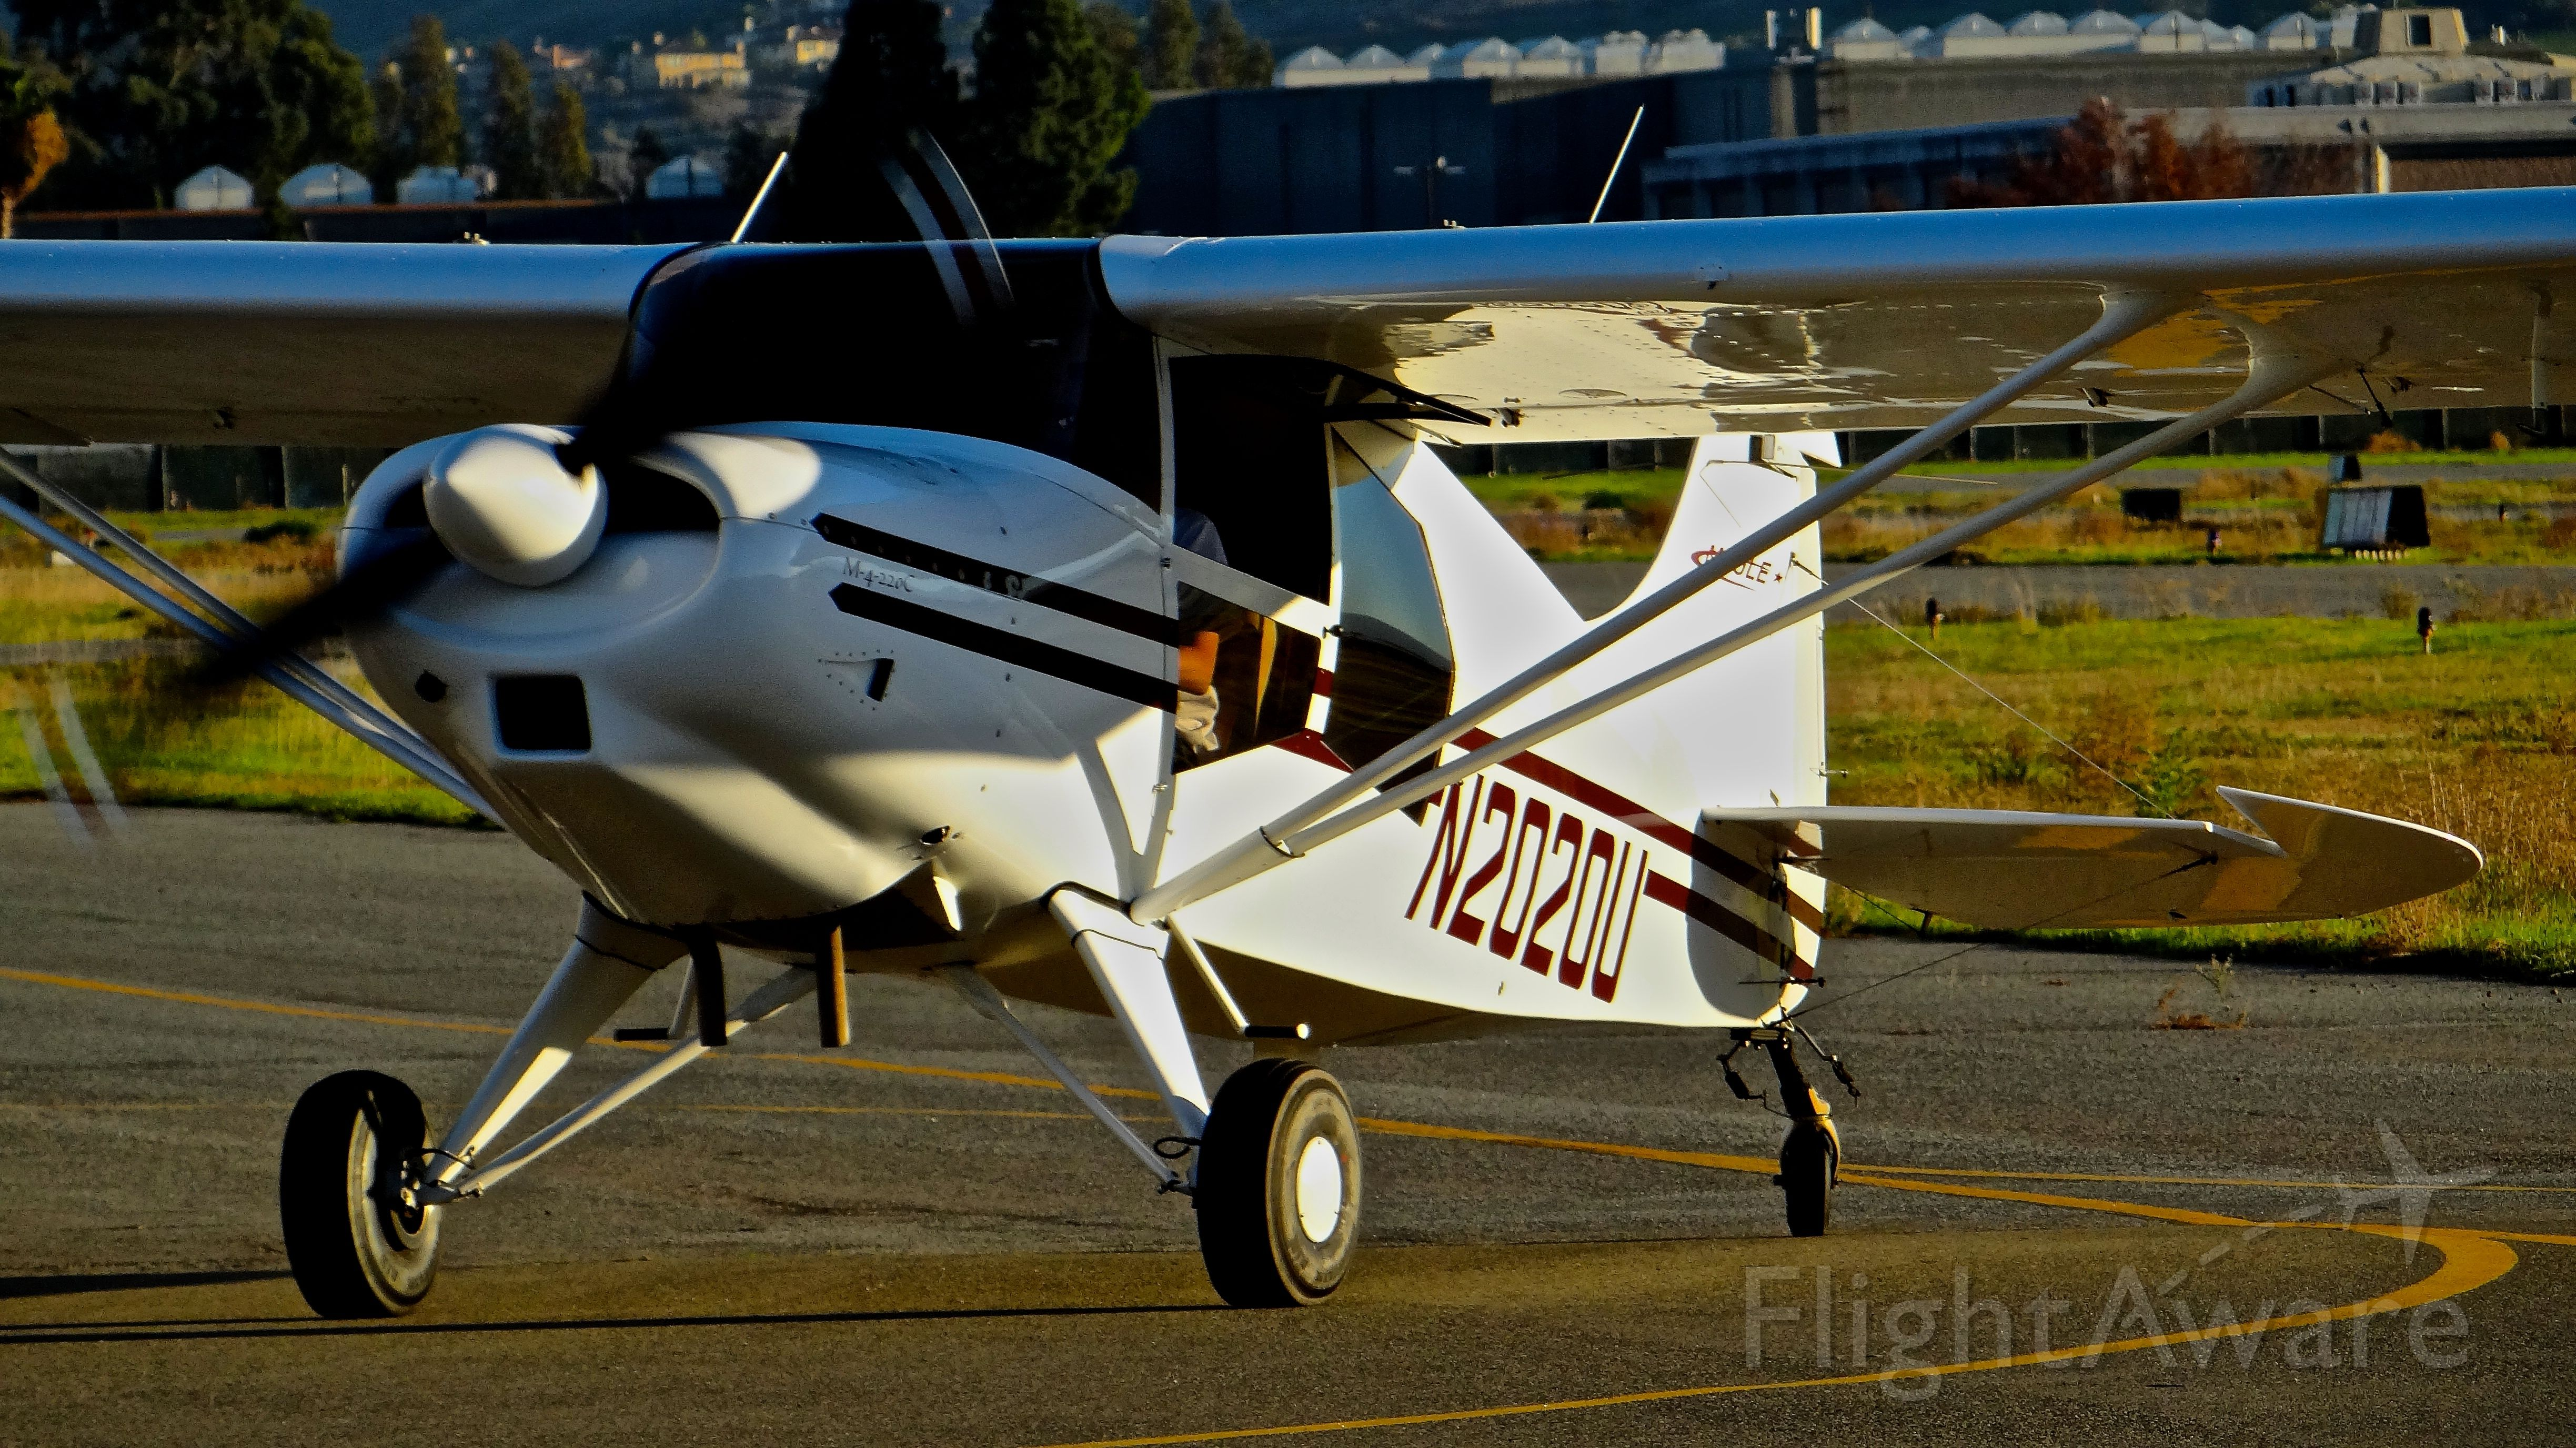 MAULE M-4 Rocket (N2020U) - Local Maule taxing in after patterns at Reid Hillview Airport, San Jose, CA.